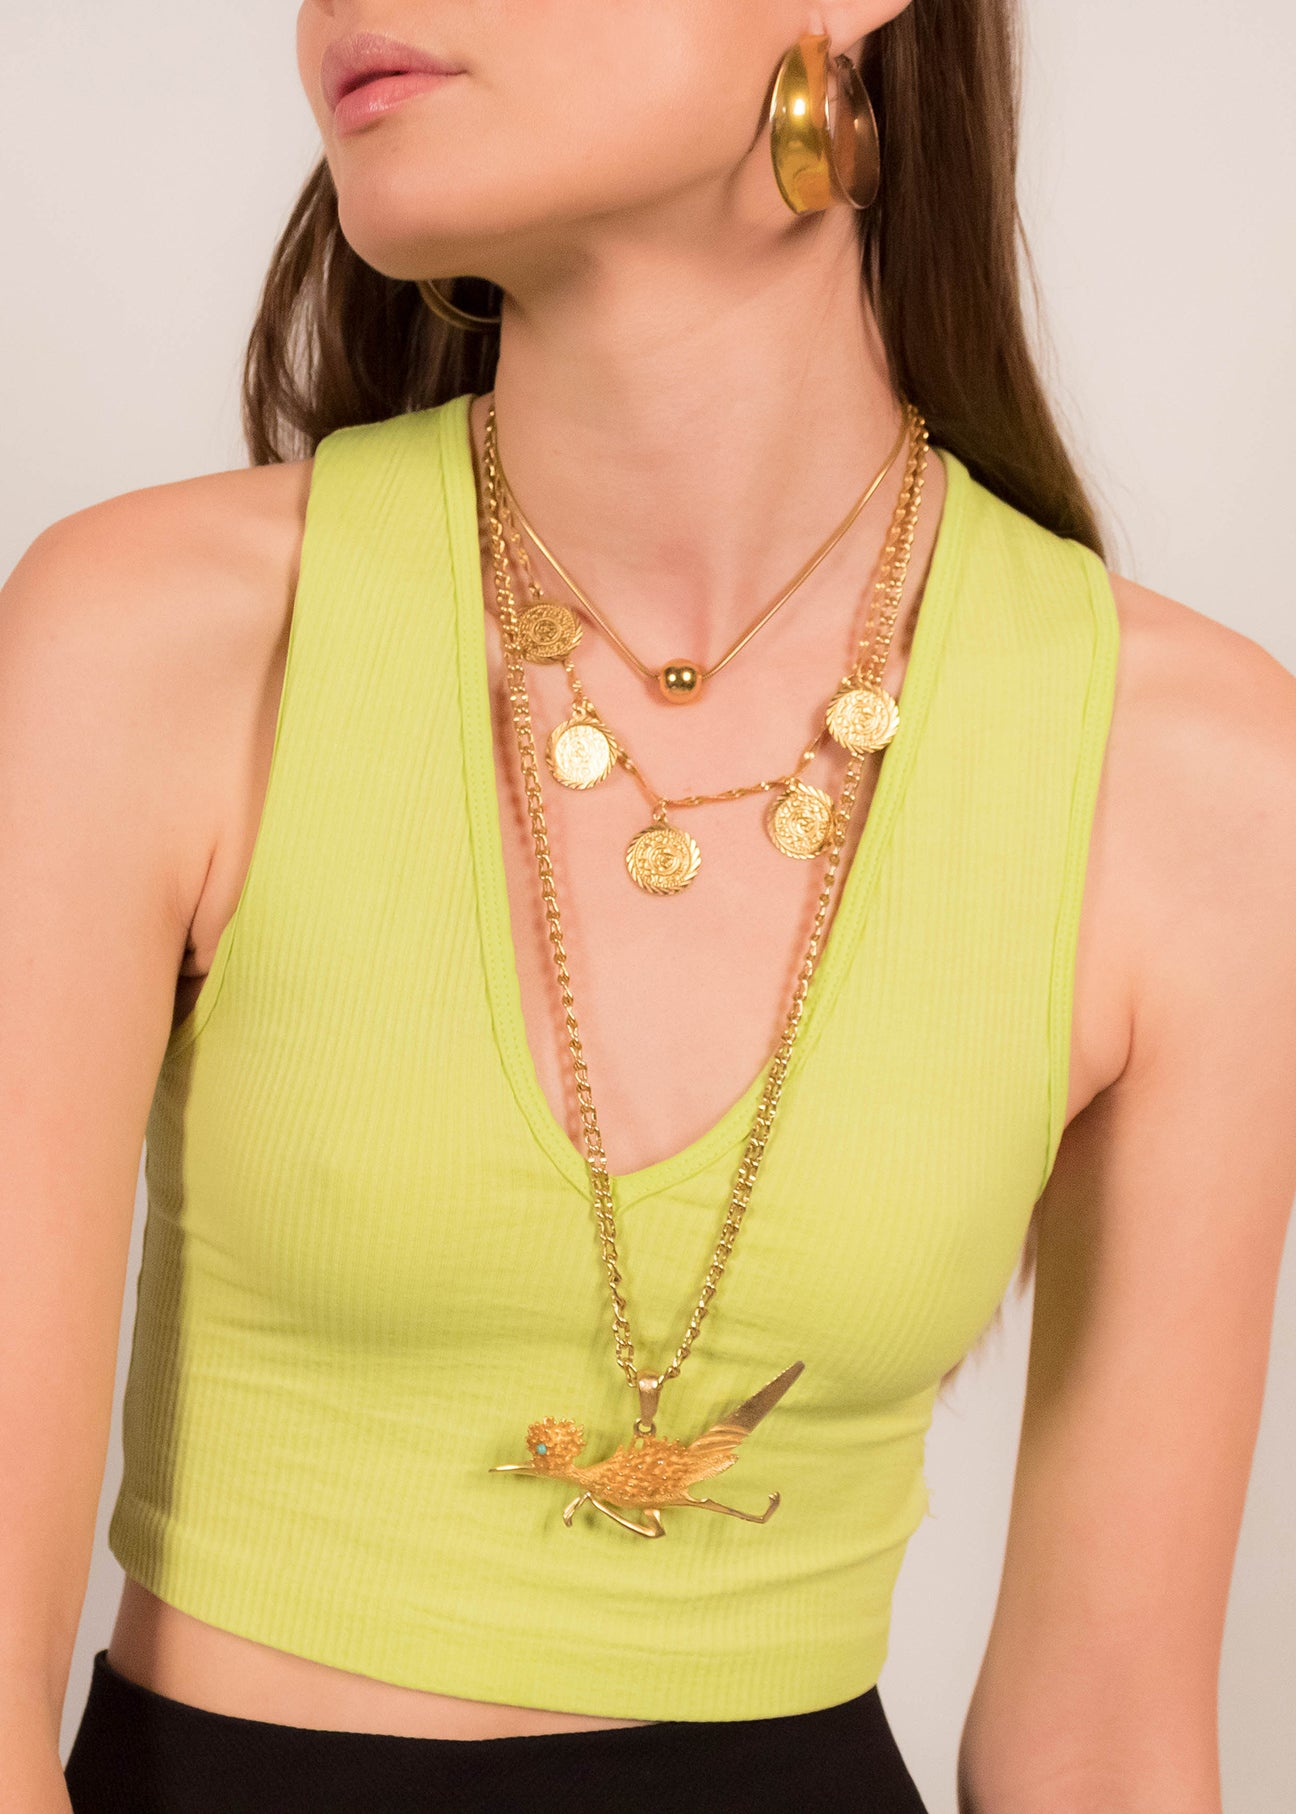 60s Road-Runner Necklace